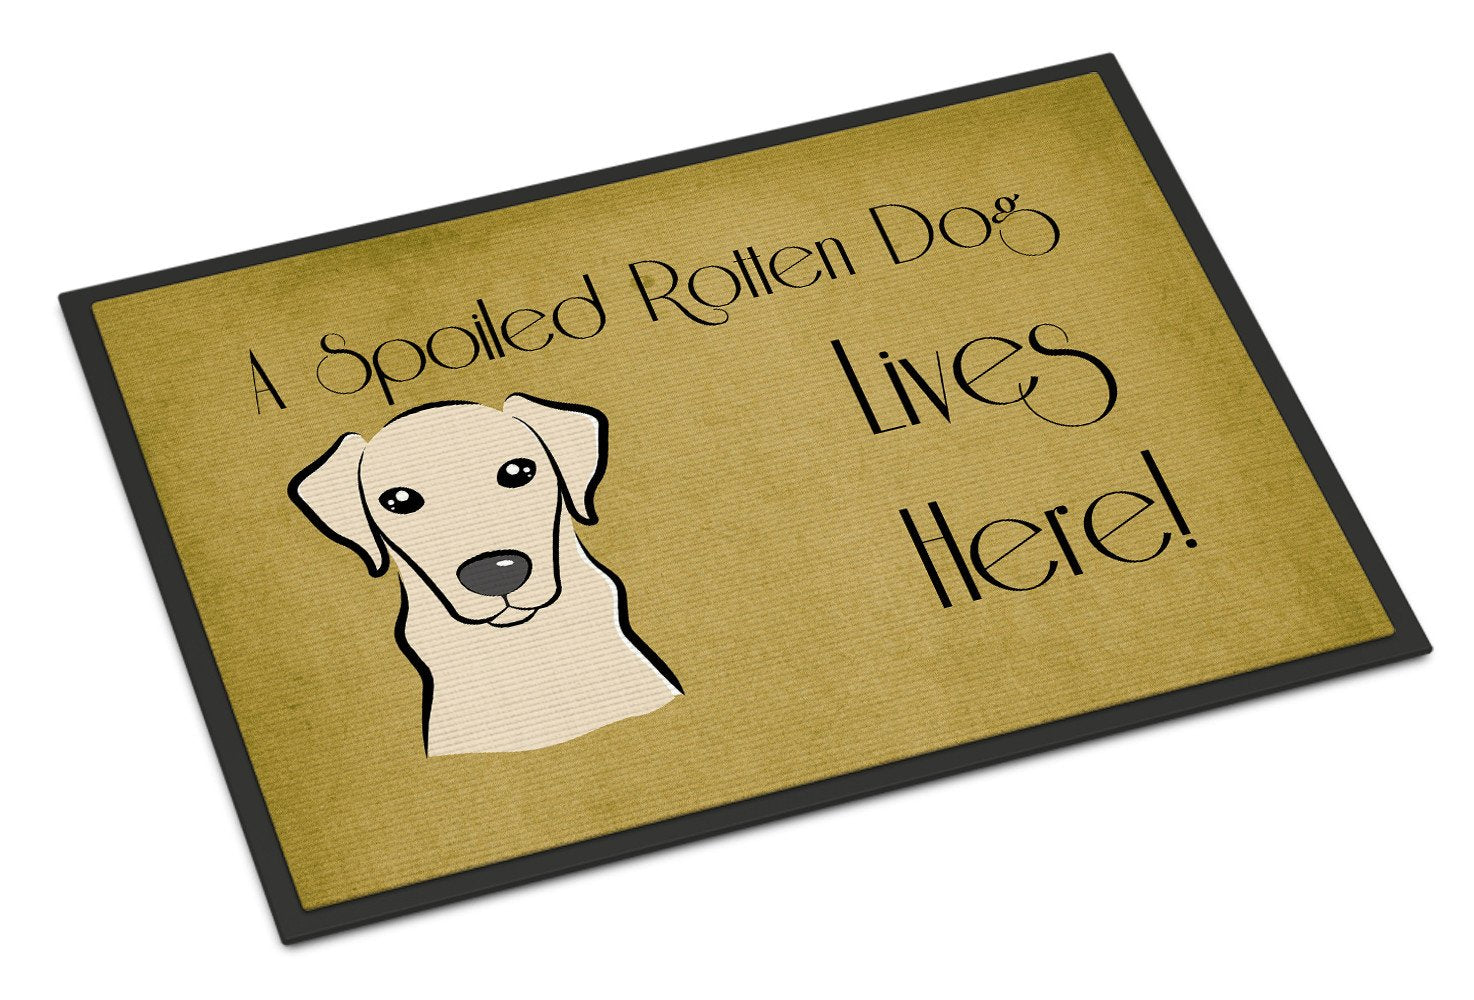 Yellow Labrador Spoiled Dog Lives Here Indoor or Outdoor Mat 18x27 BB1470MAT - the-store.com